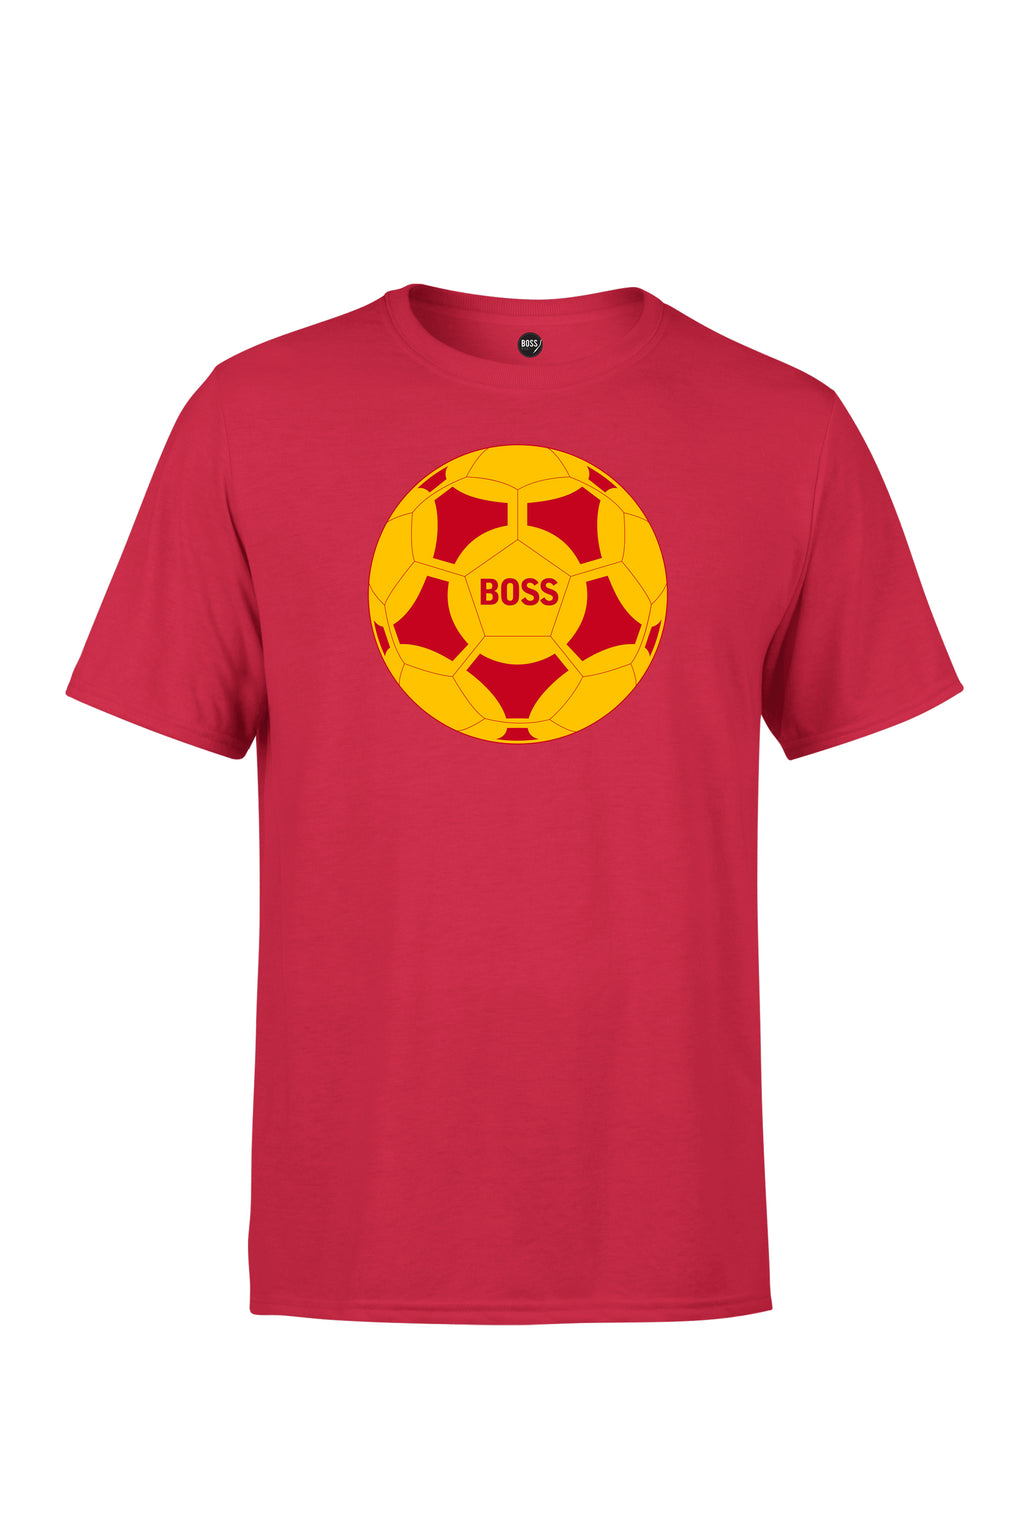 BOSS - Ball Logo - Red / Yellow (Red)